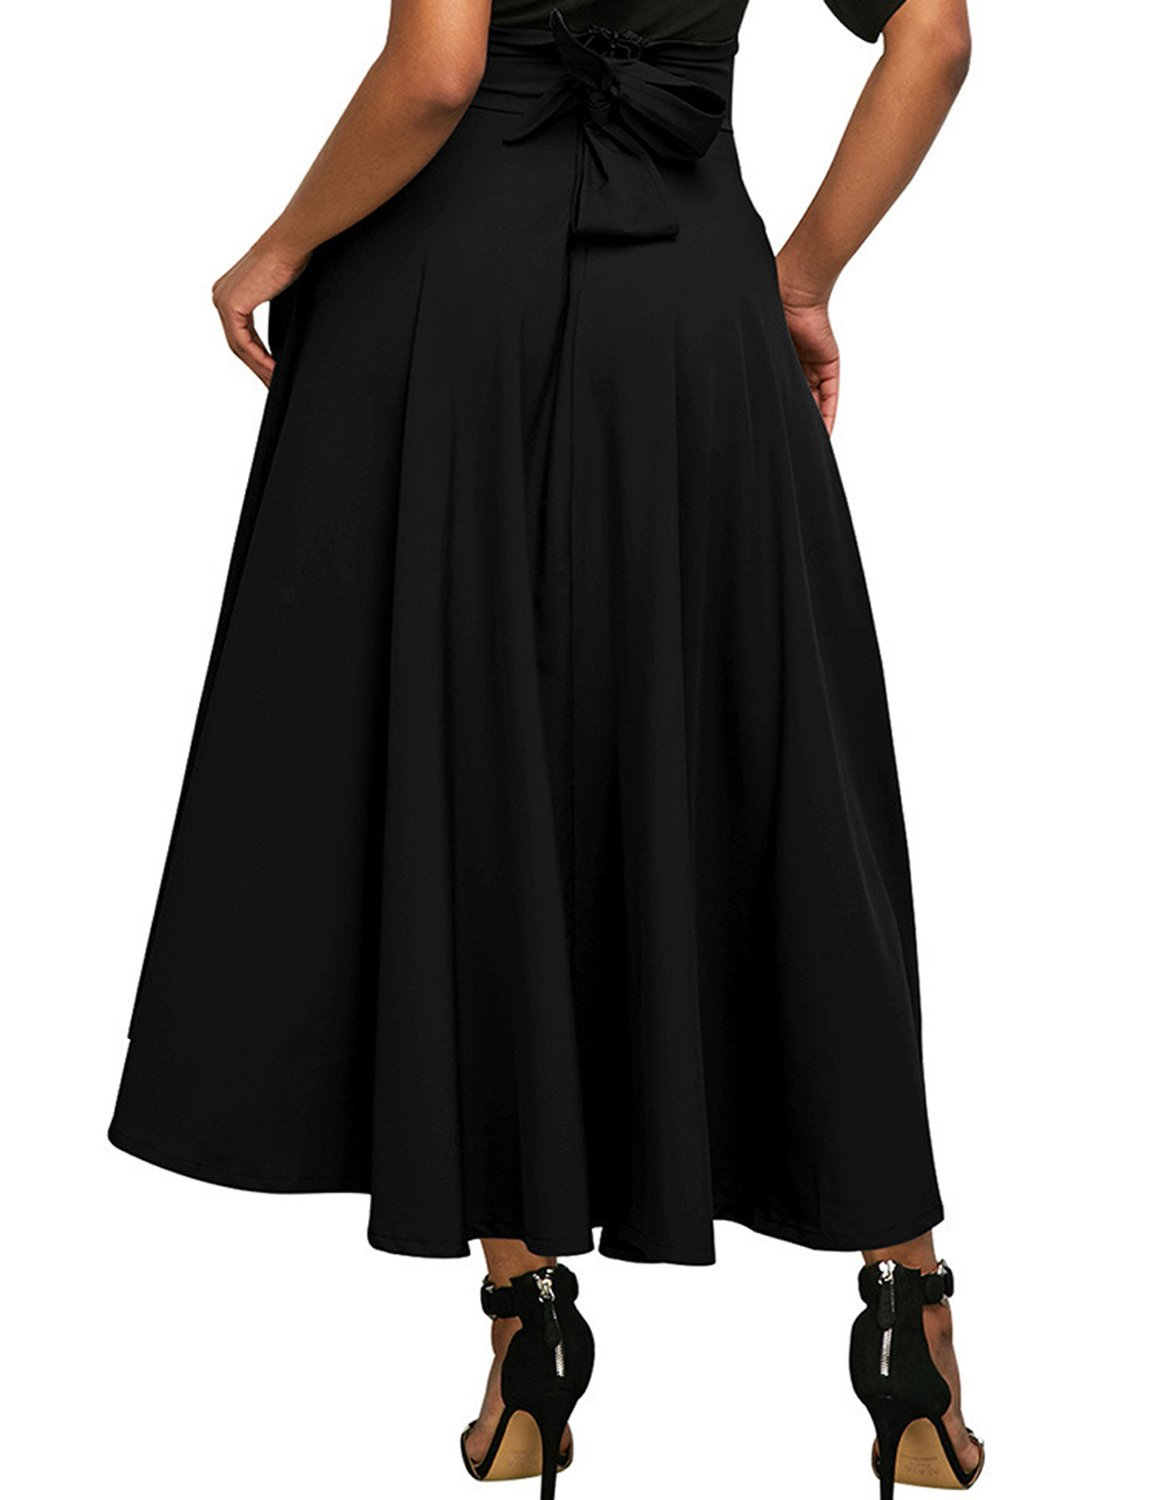 Kimikal Gothic Steampunk Long Sateen Corset Skirt 5